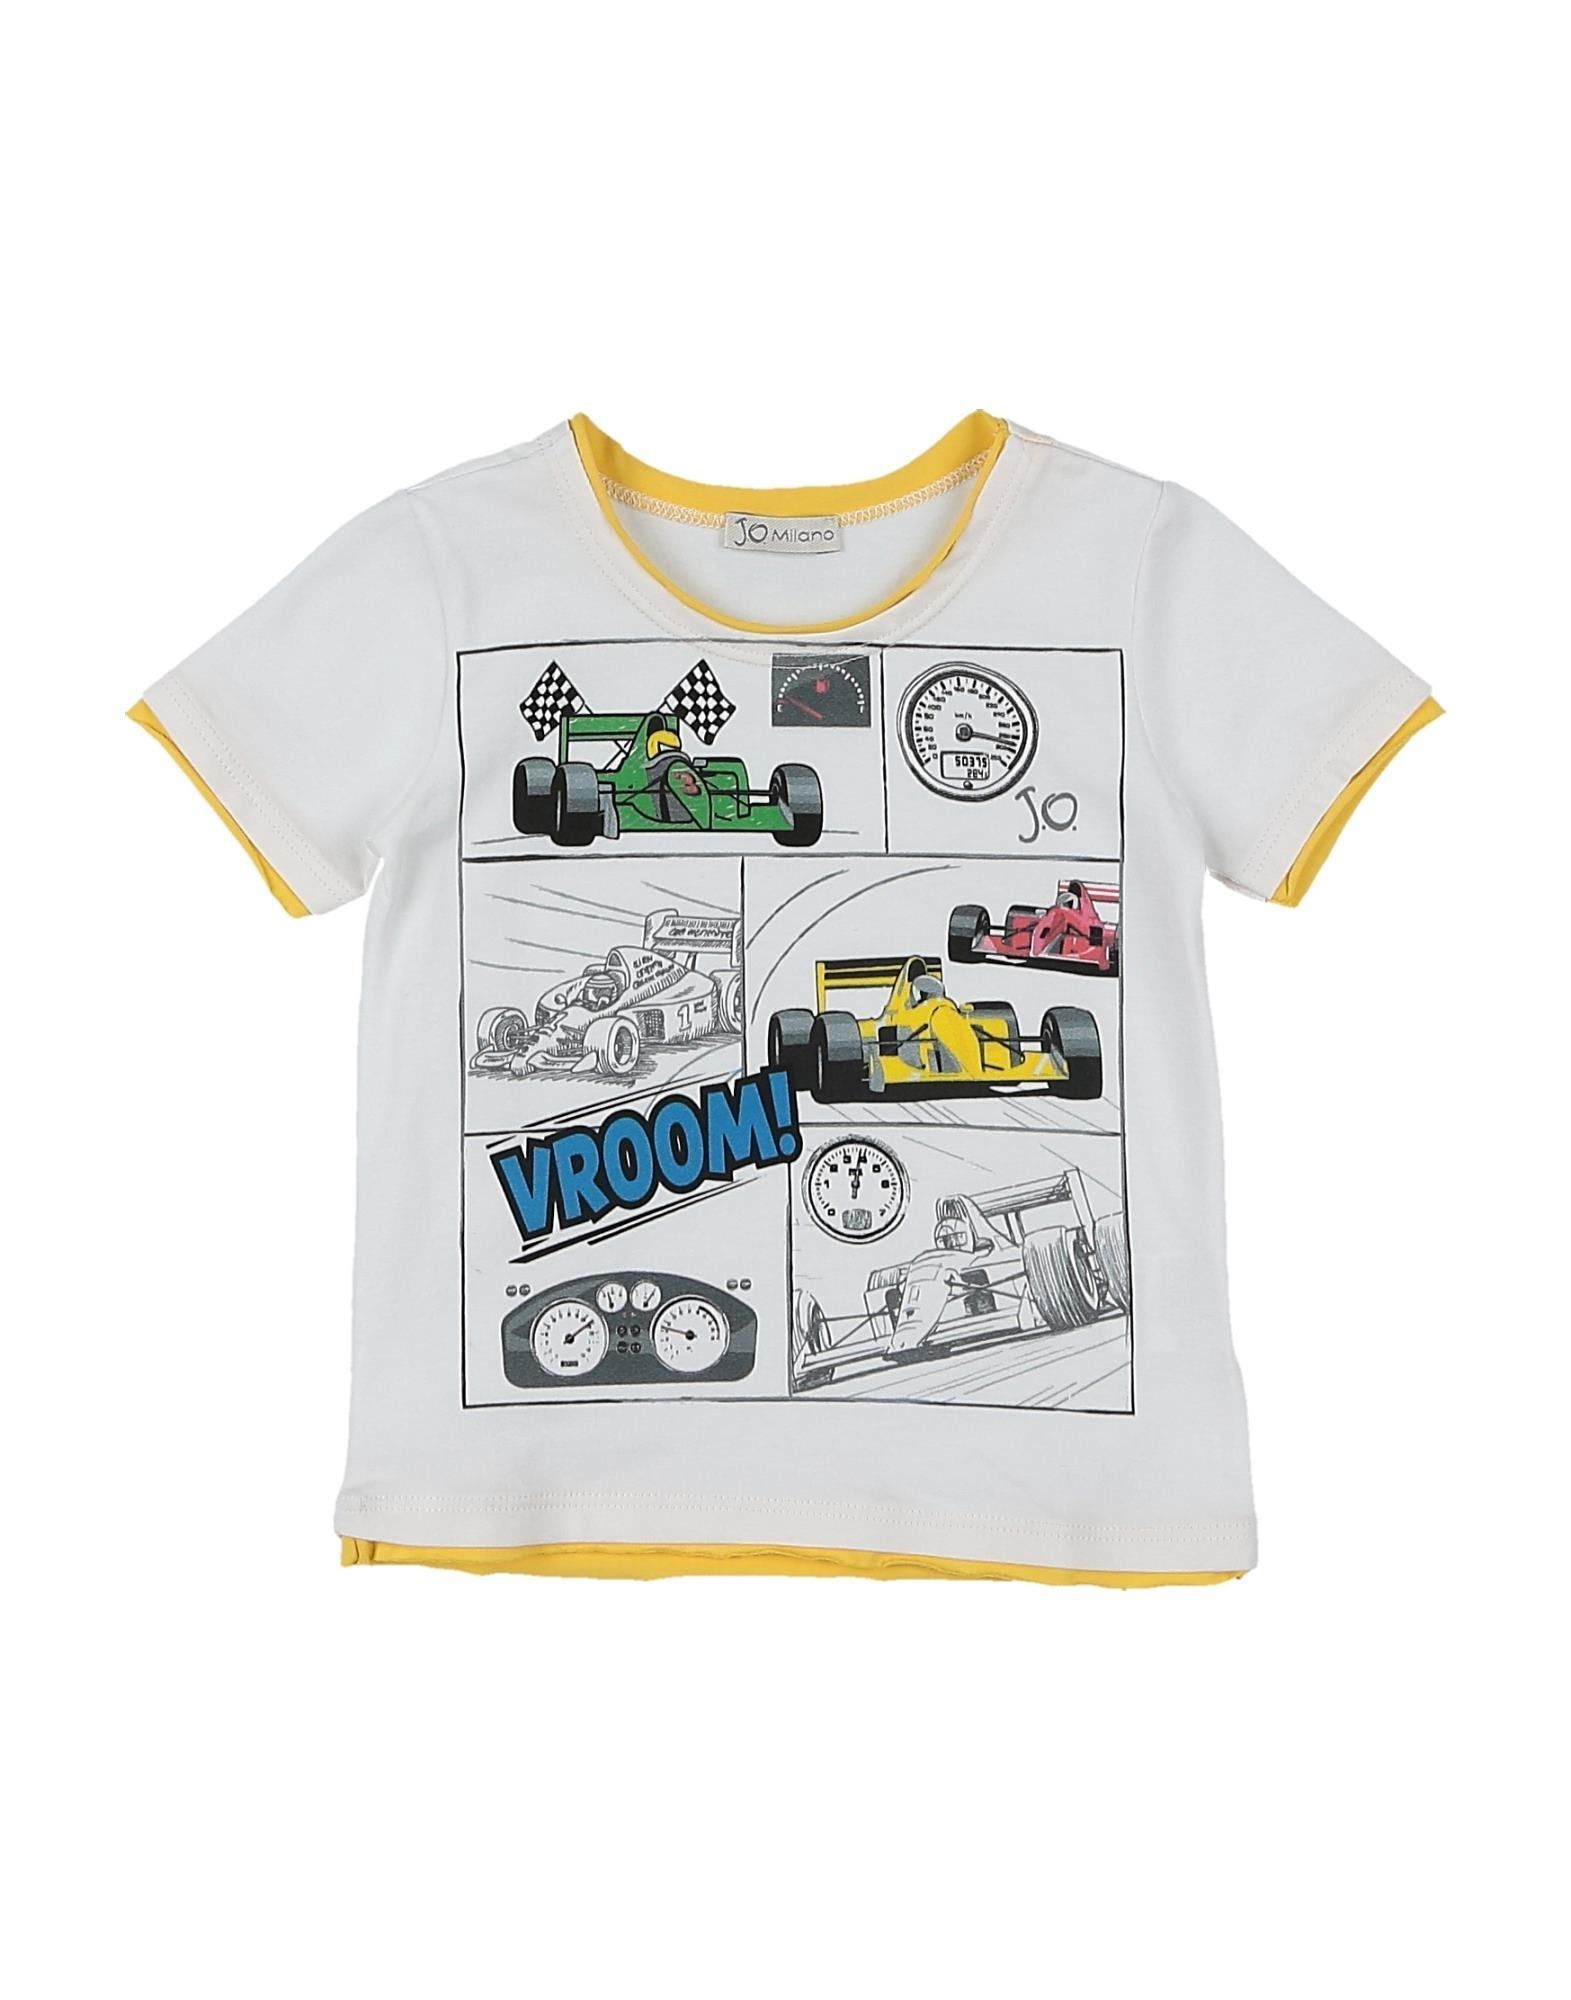 J.o. Milano Kids' T-shirts In White